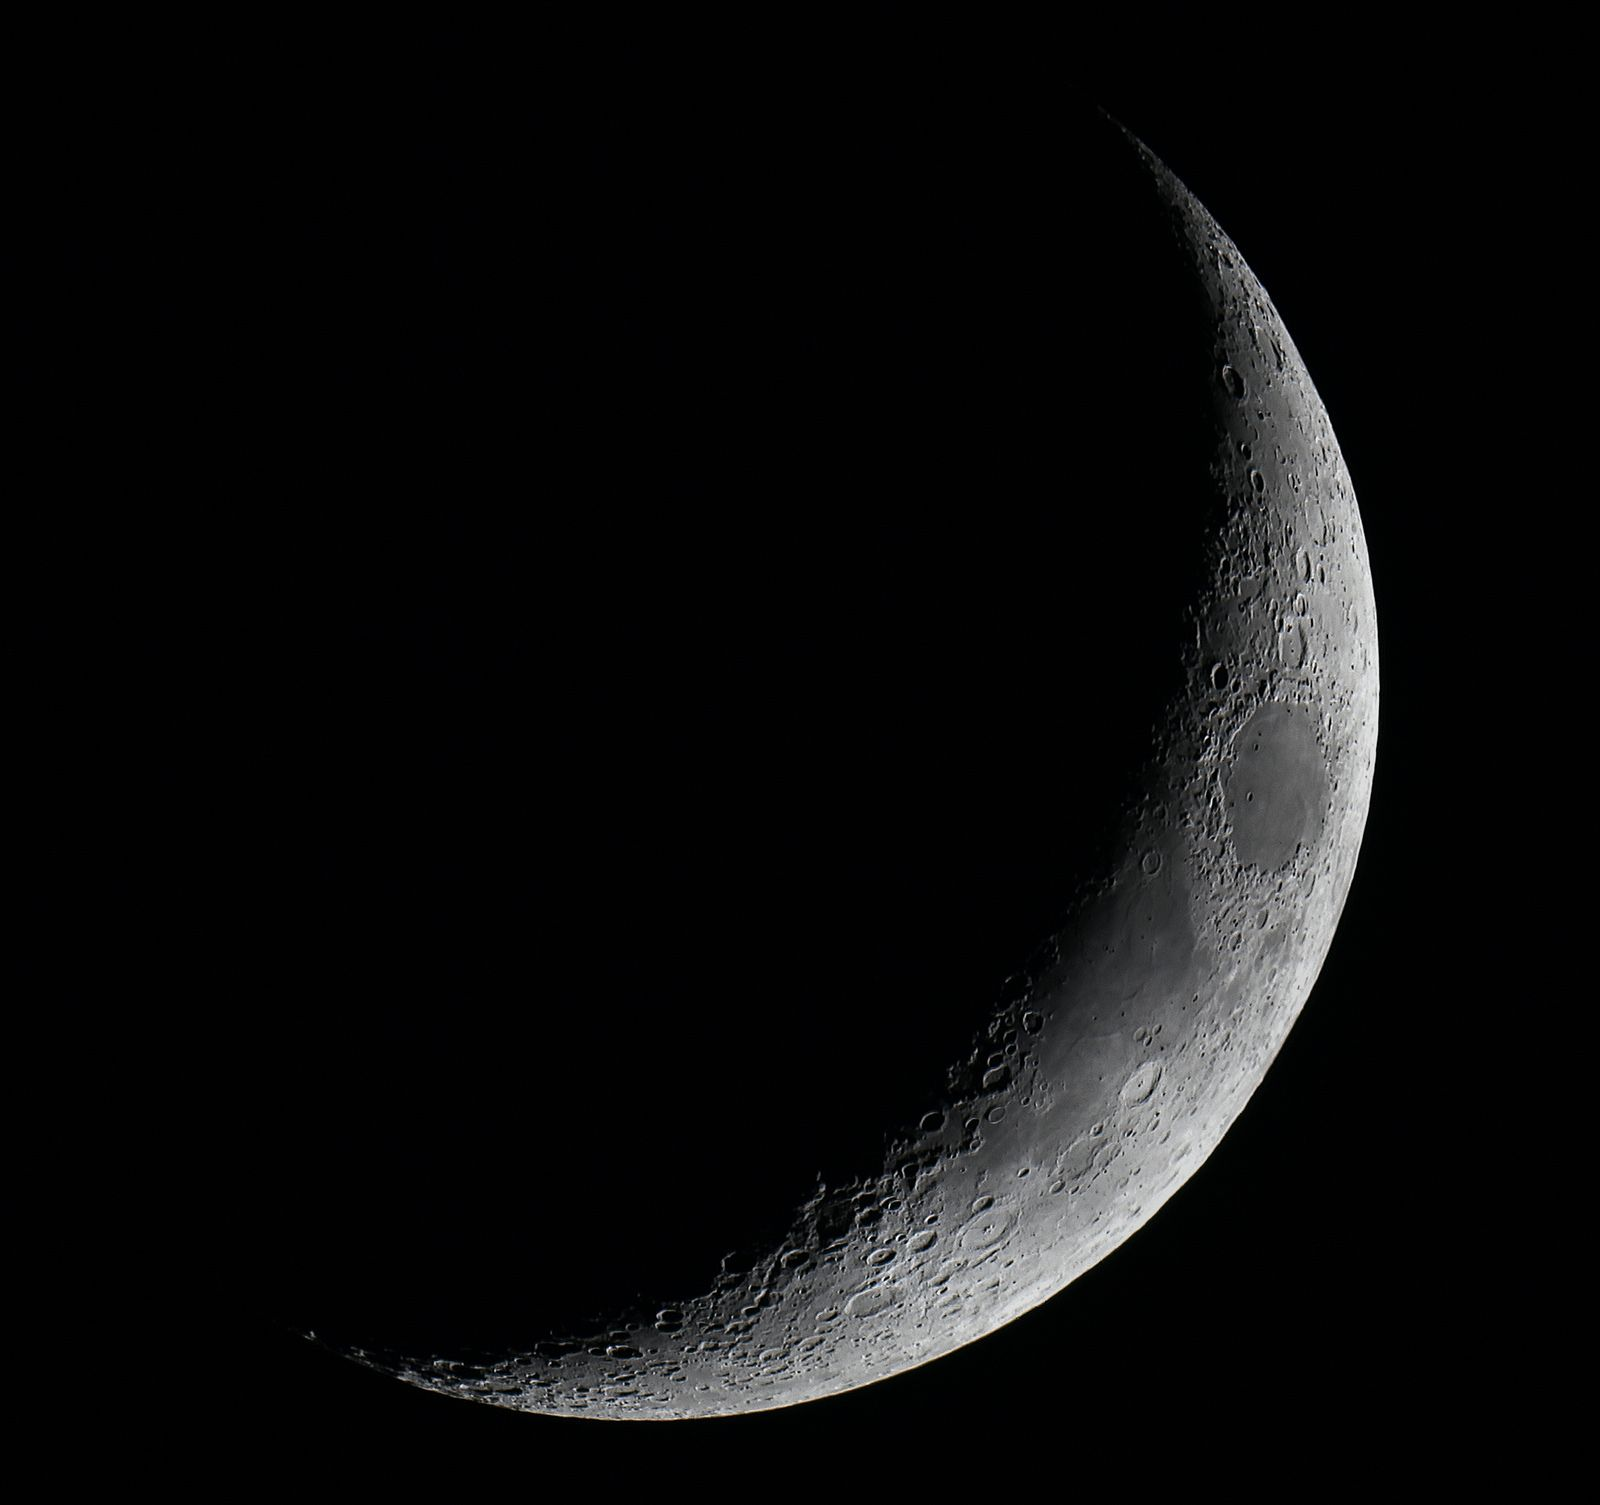 25-12-14 Christmas Day crescent Moon at 3.70 days old